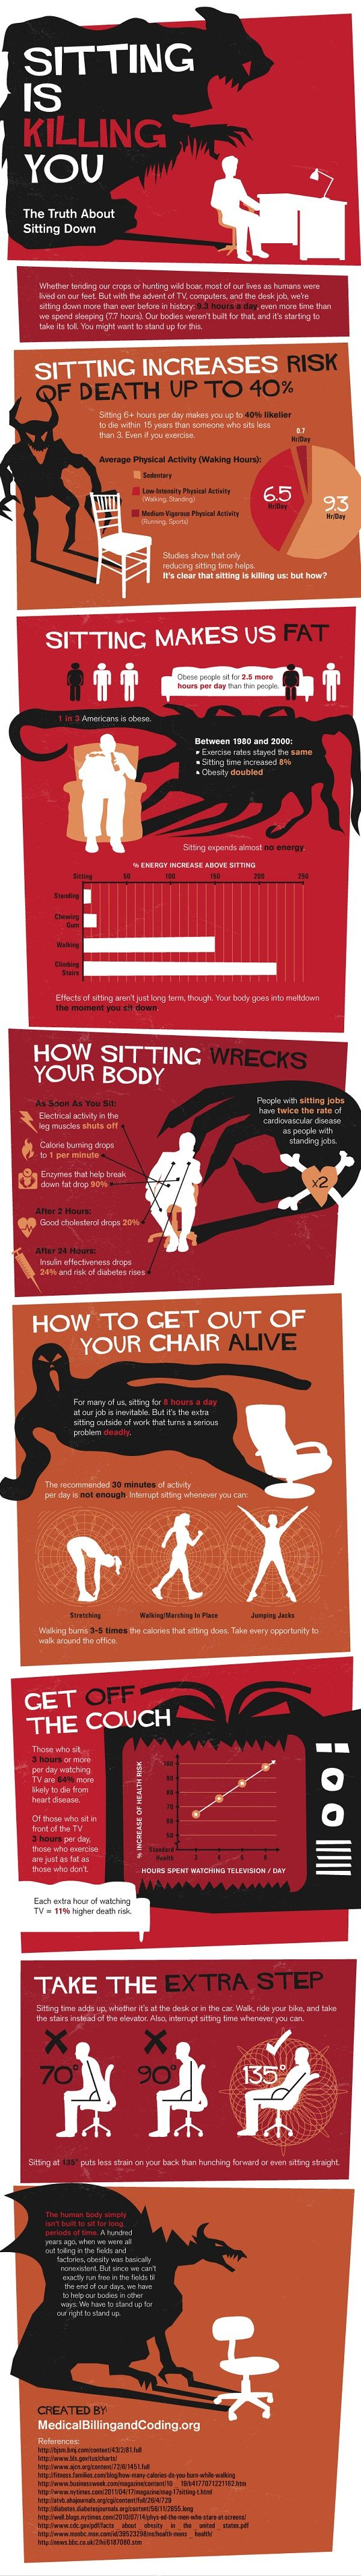 Sitting Is Killing You (Infographic)